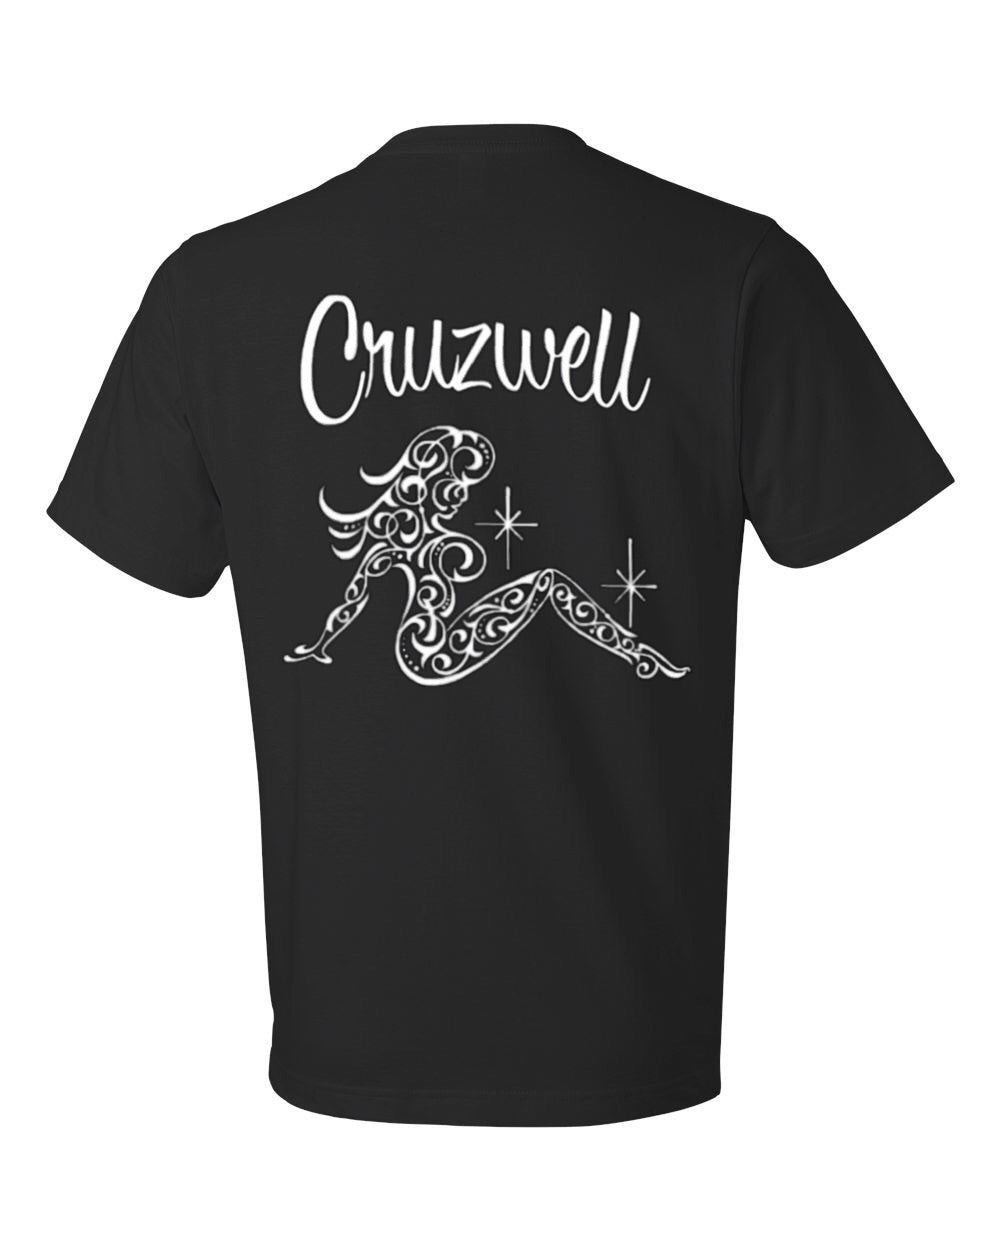 Mother trucker - Cruzwell Mfg